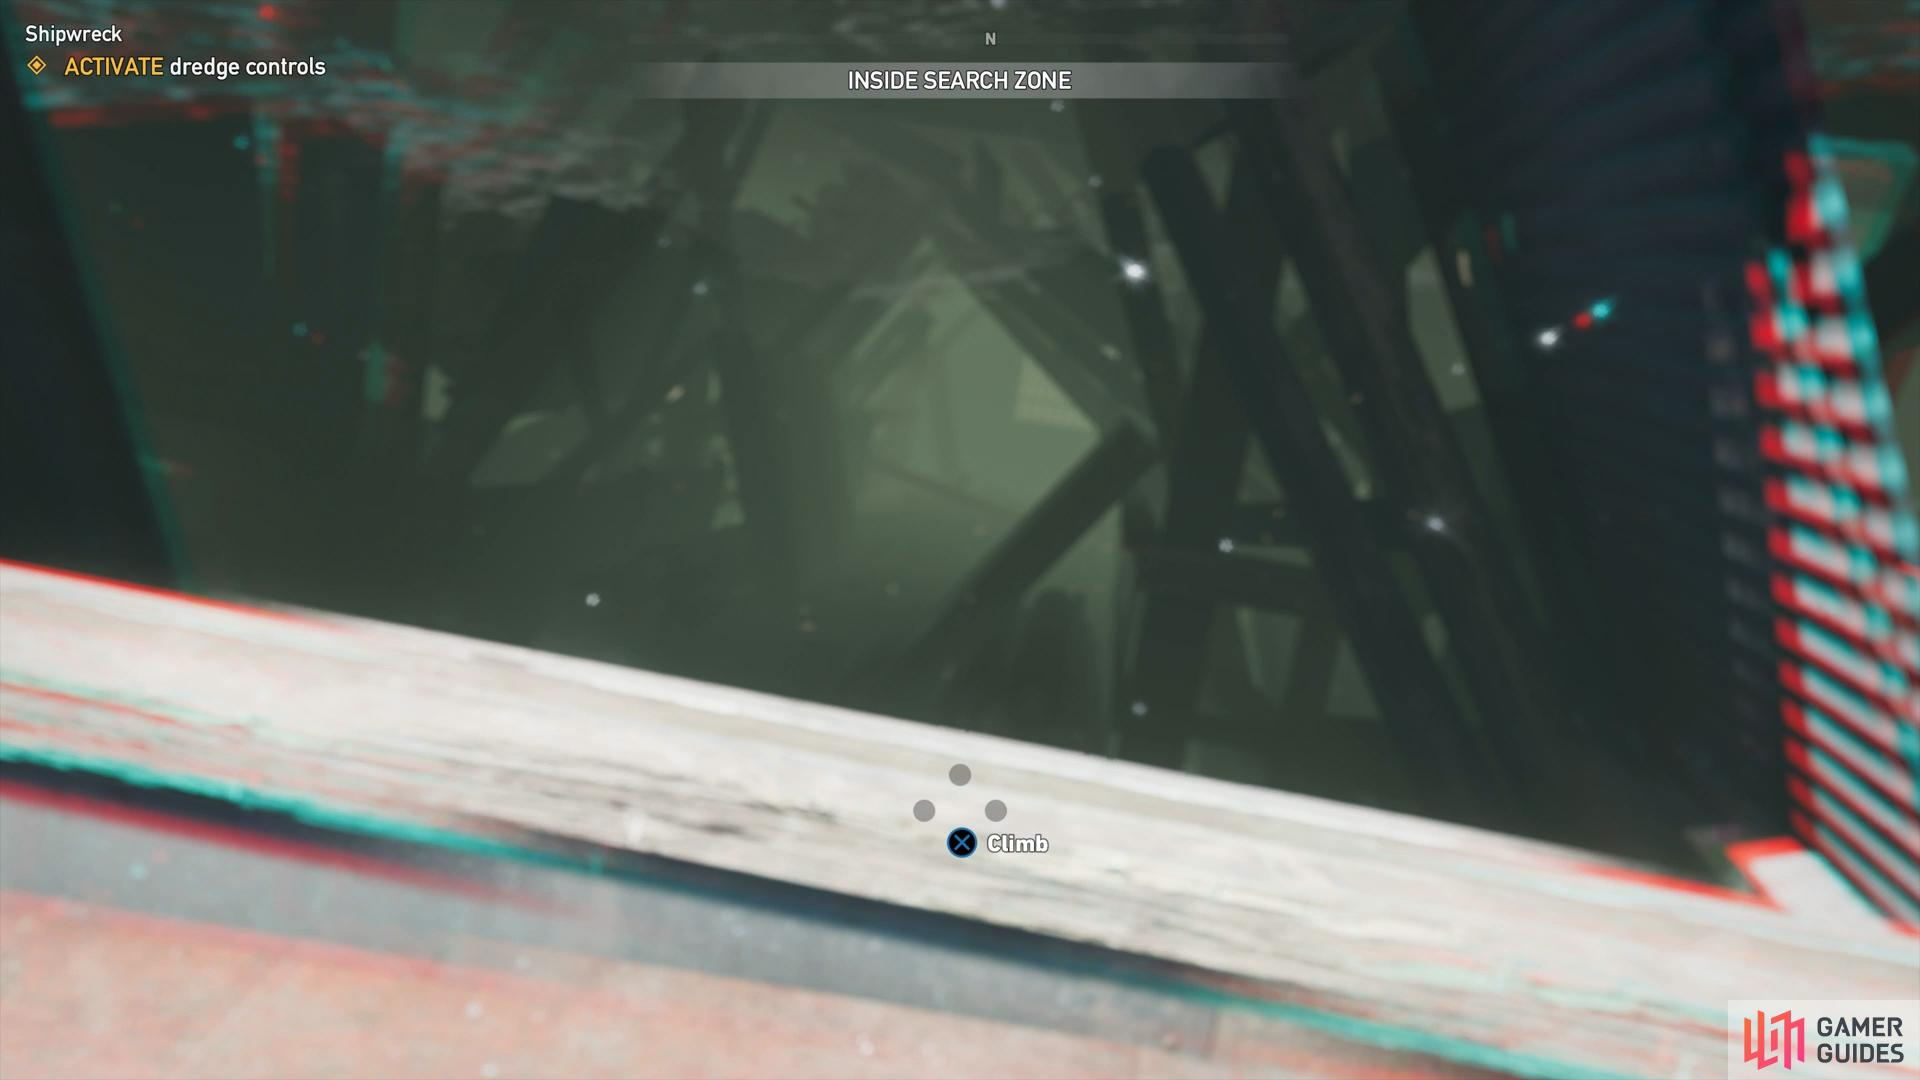 swim through this opening to the end and climb out inside the dredge